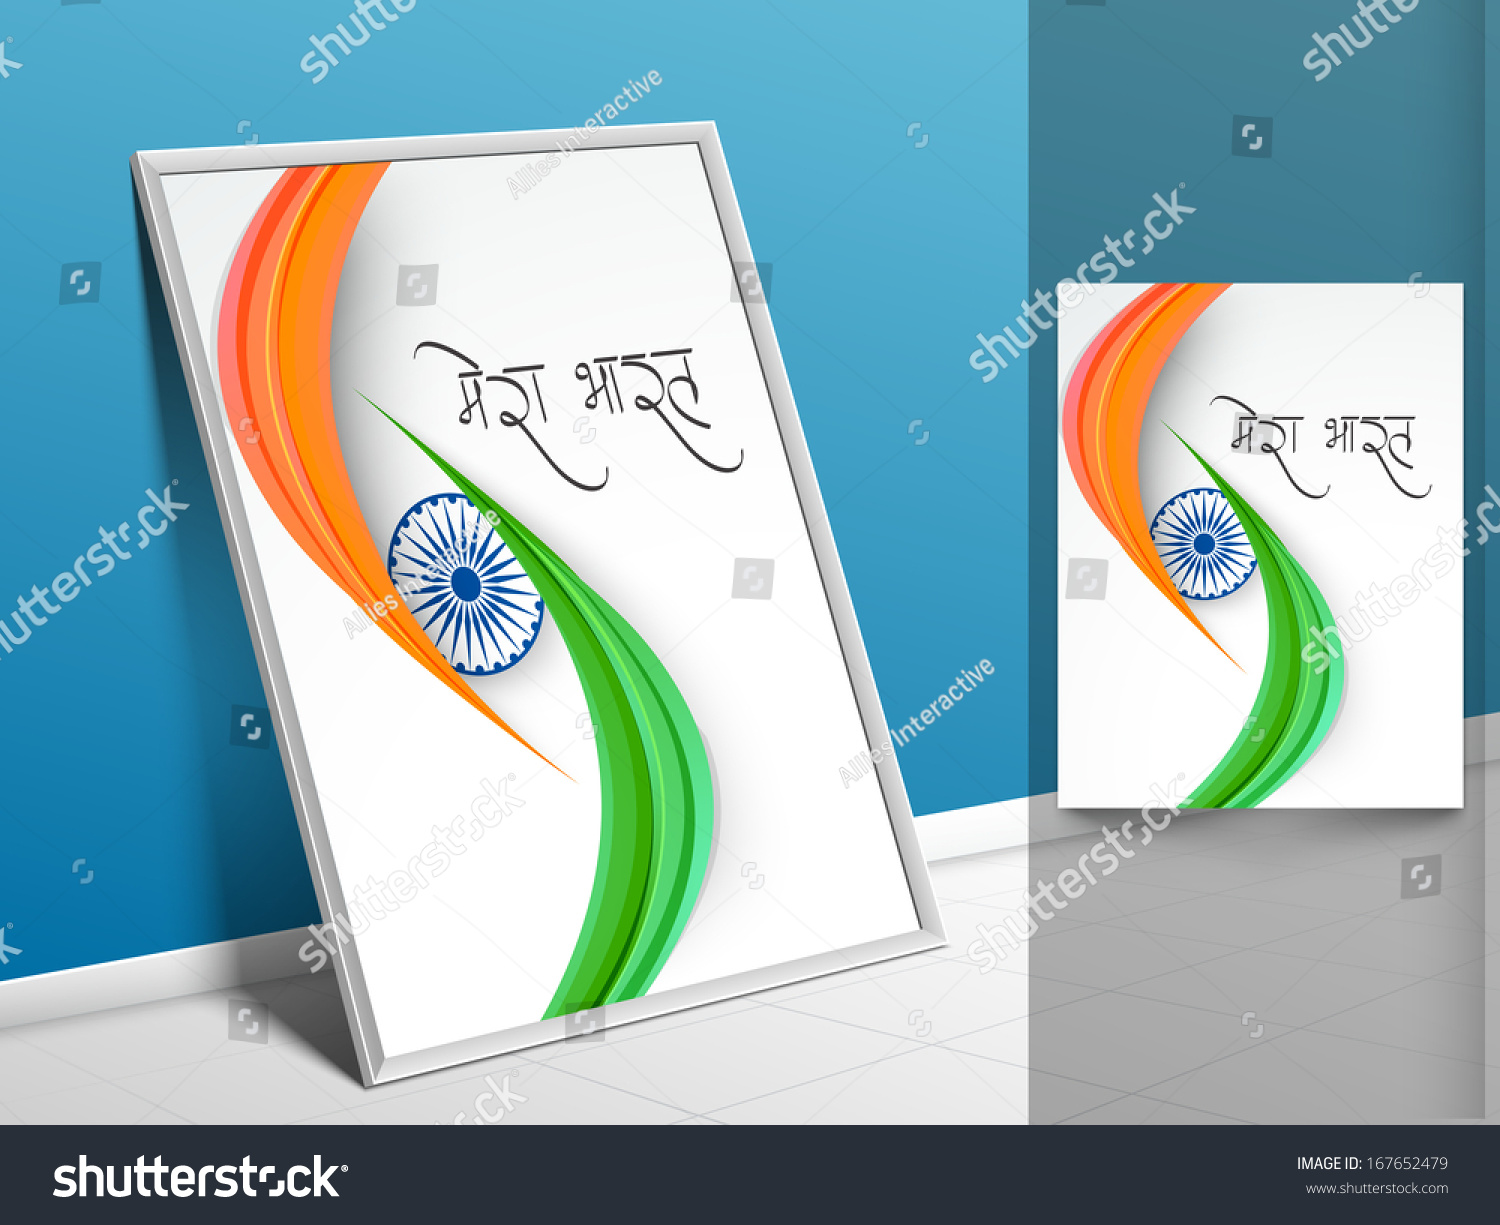 Card Making Ideas For Republic Day Part - 23: Stock-vector-indian-republic-day-or-independence-day-